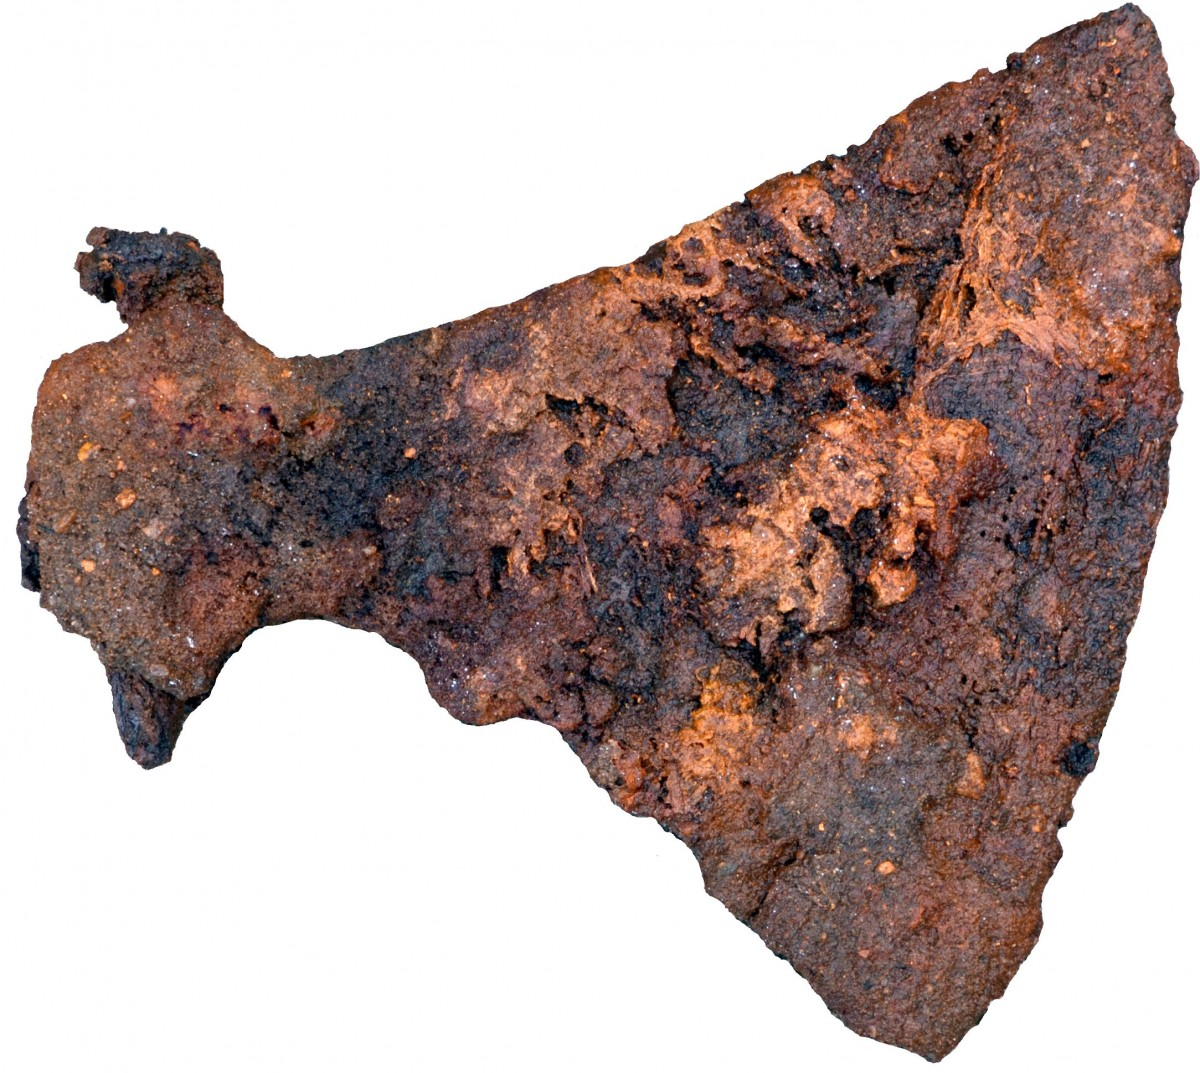 Archaeologists found a large axe buried in one of the men's graves. Photo Credit: Museum Silkeborg/Science Nordic.